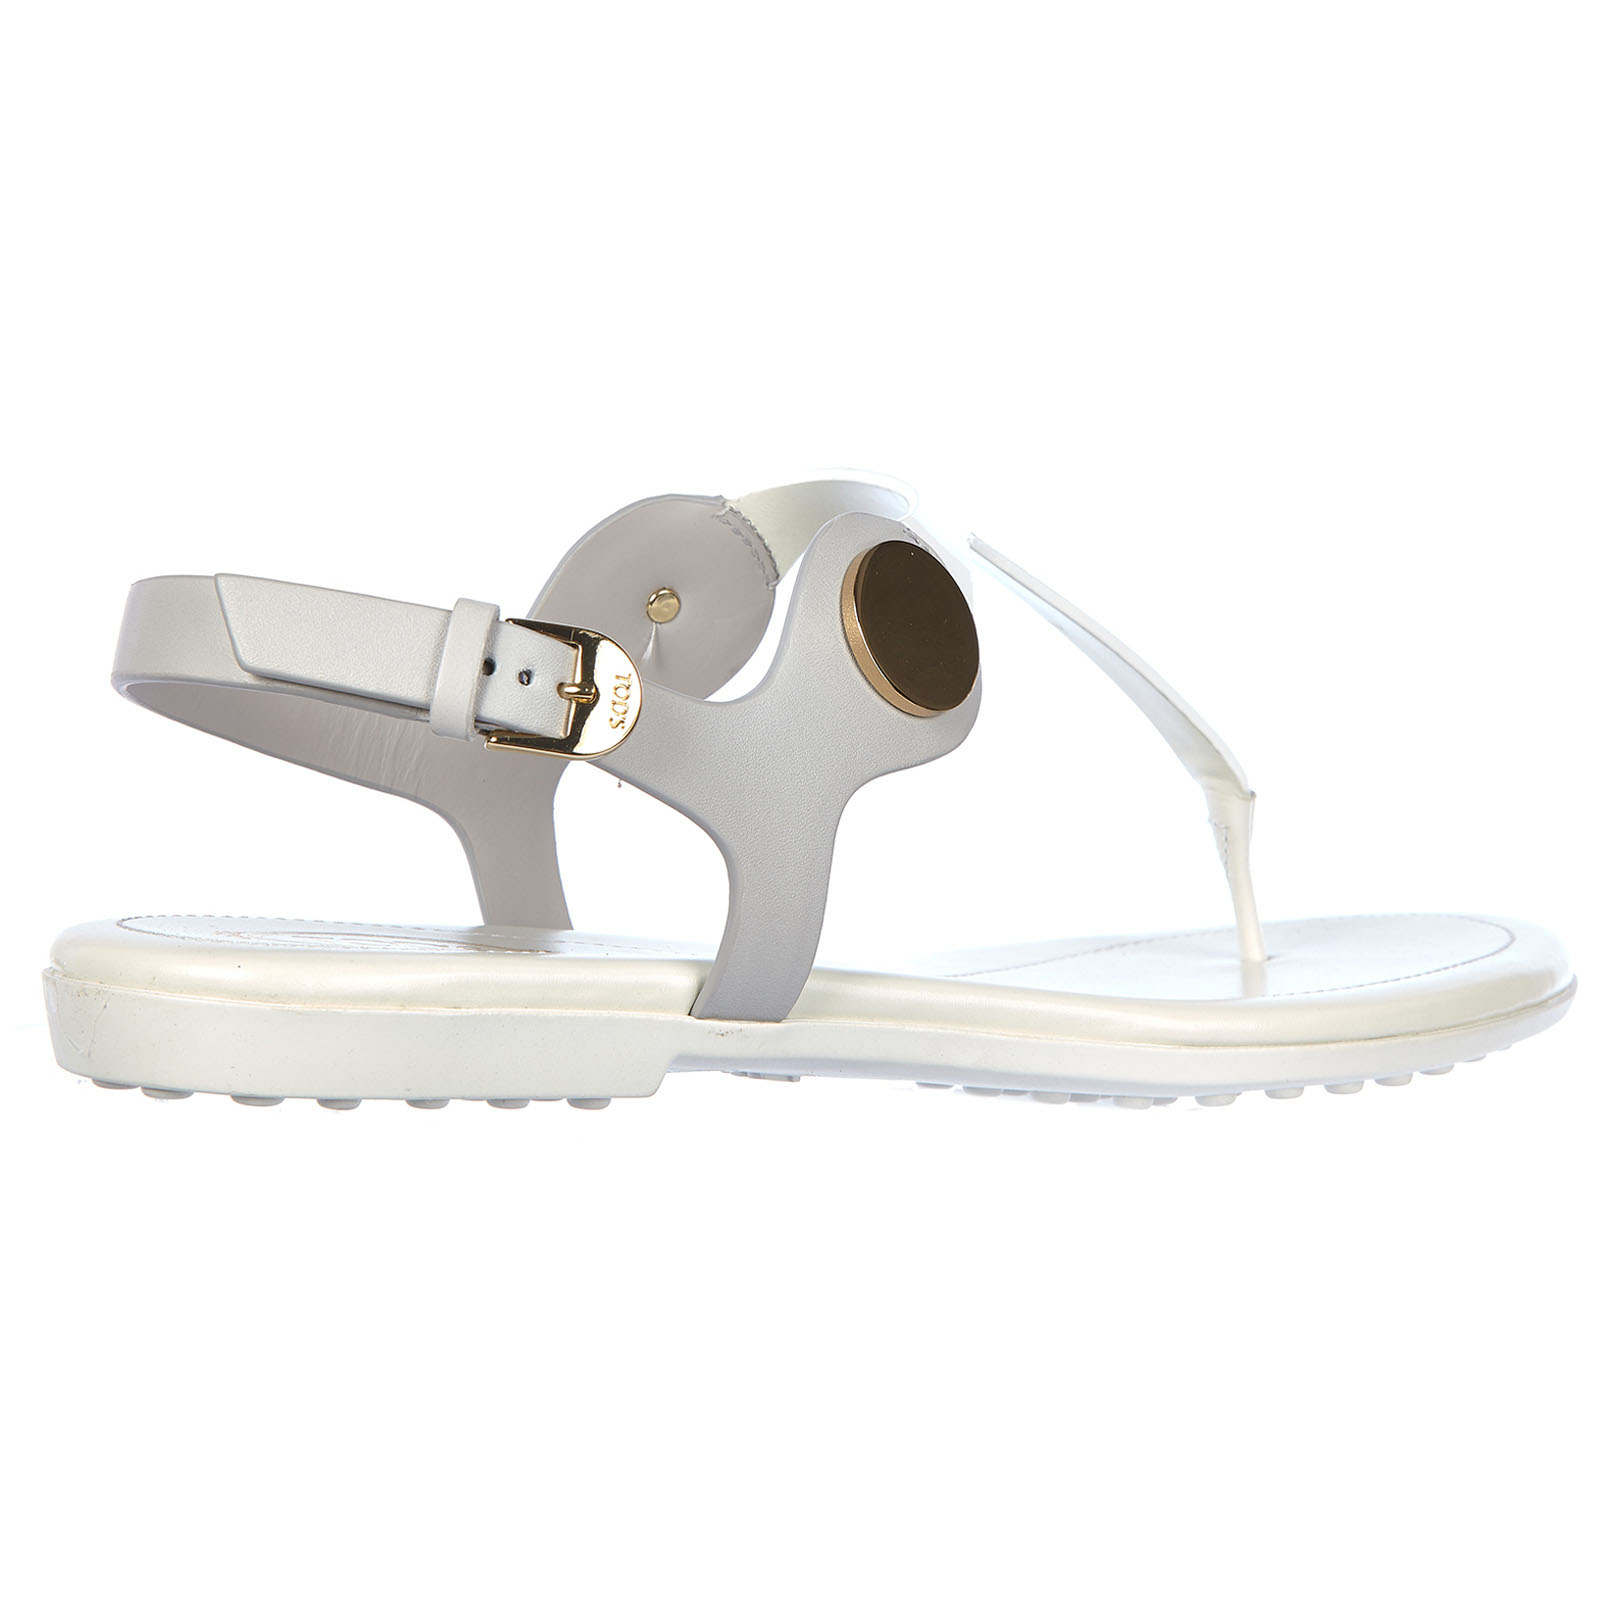 Women's leather flip flops sandals leggero bottone